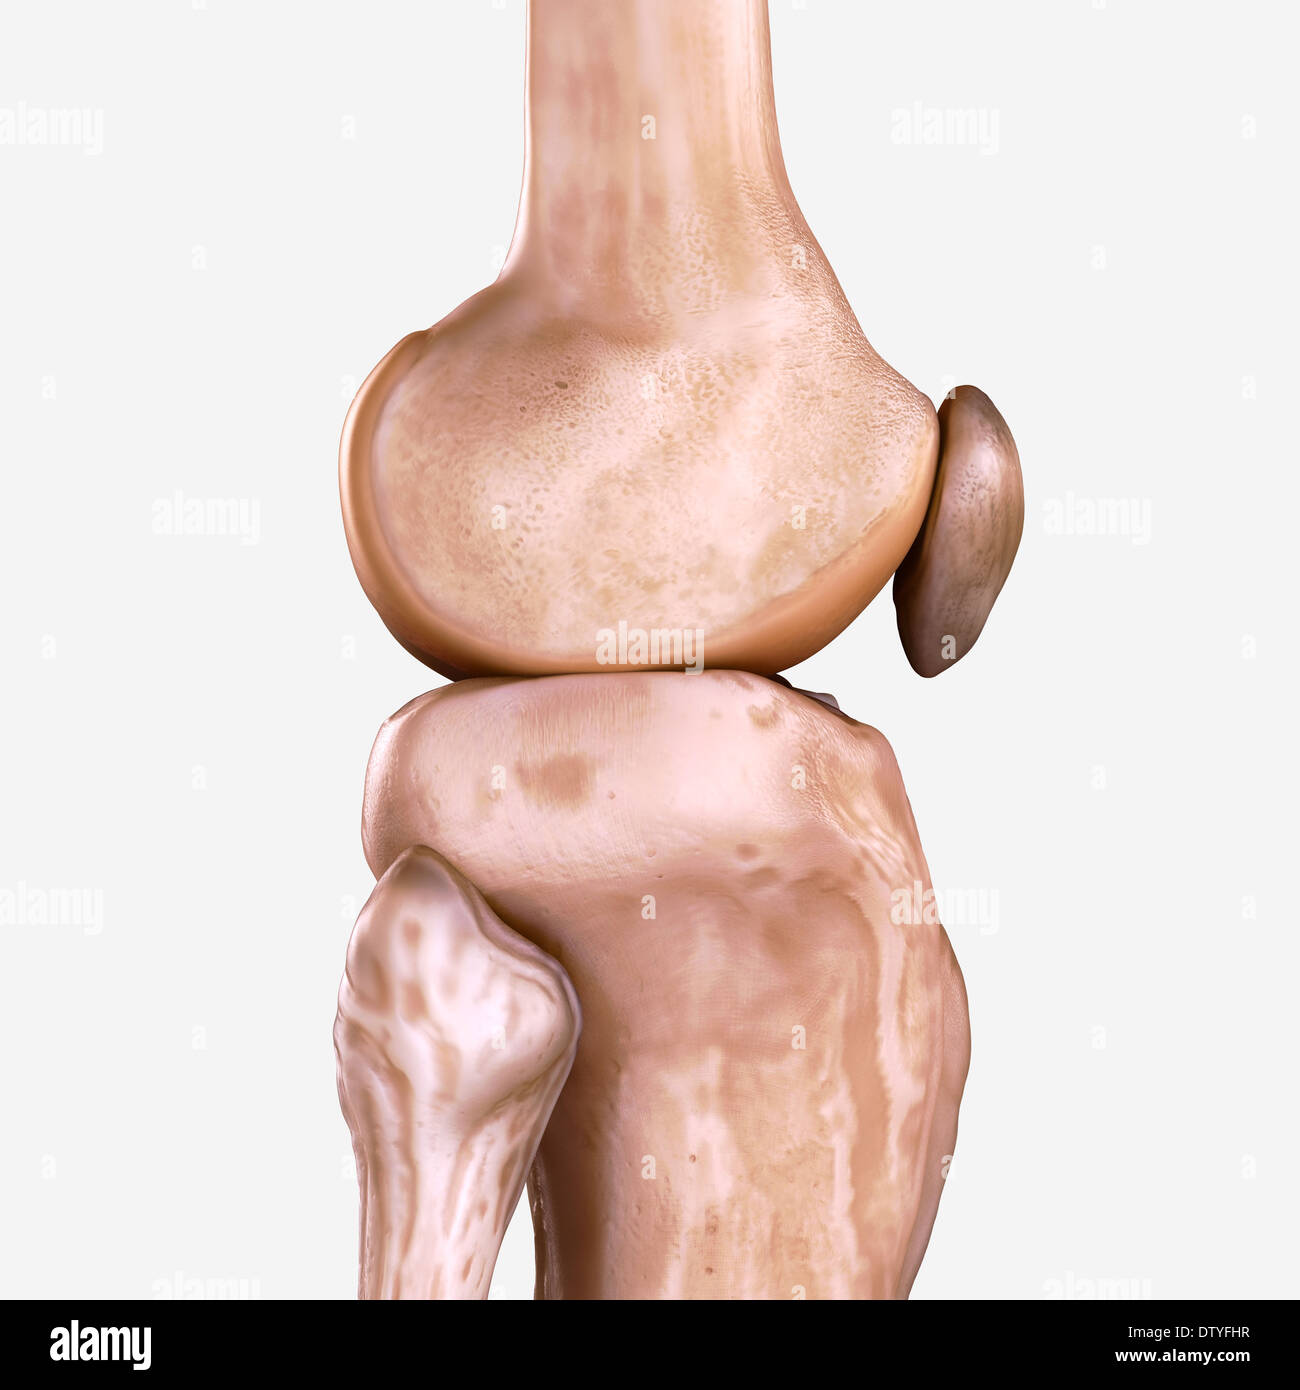 Right Knee Bones Stock Photo: 66987811 - Alamy